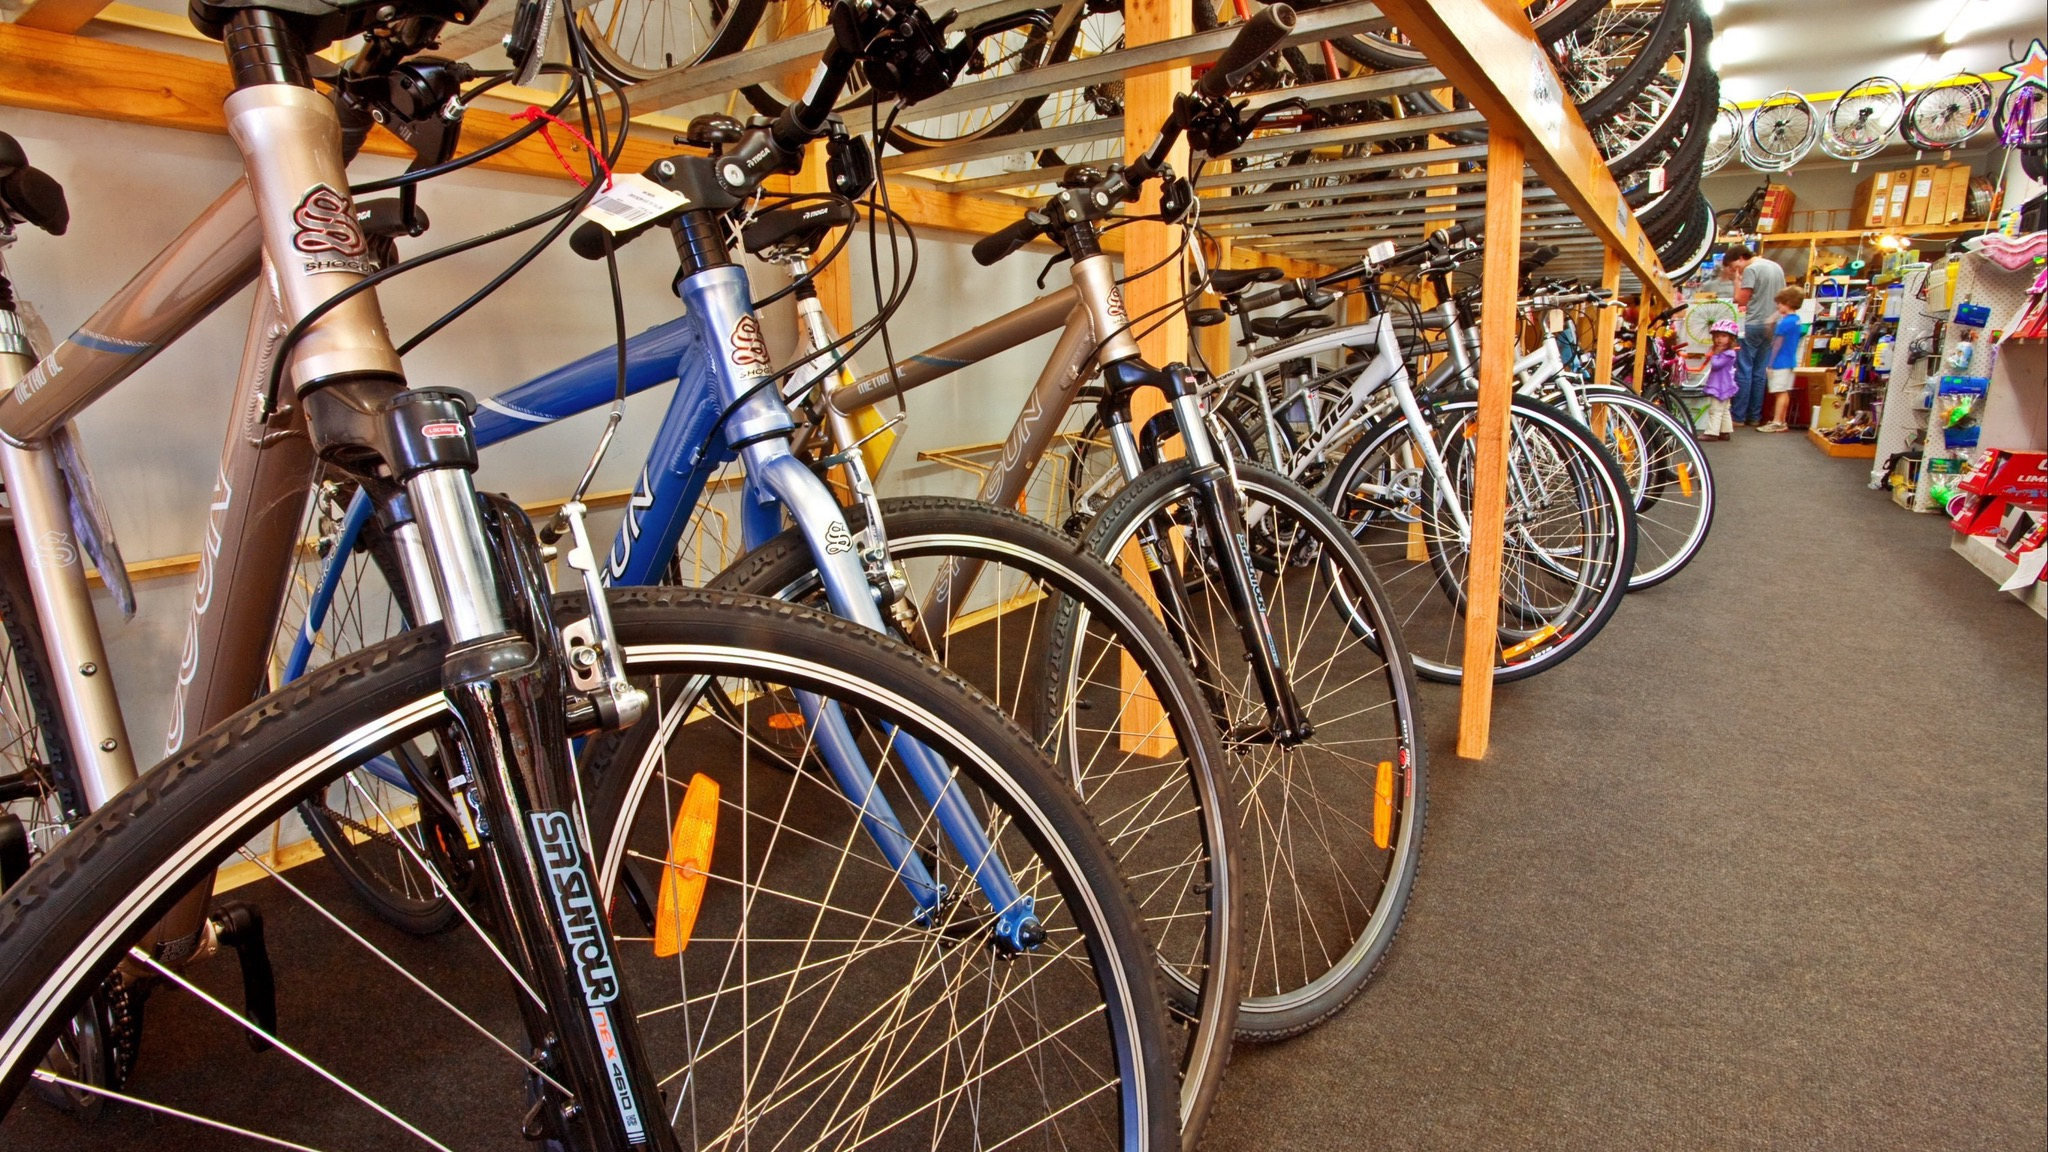 Hire bicycles for adults and children